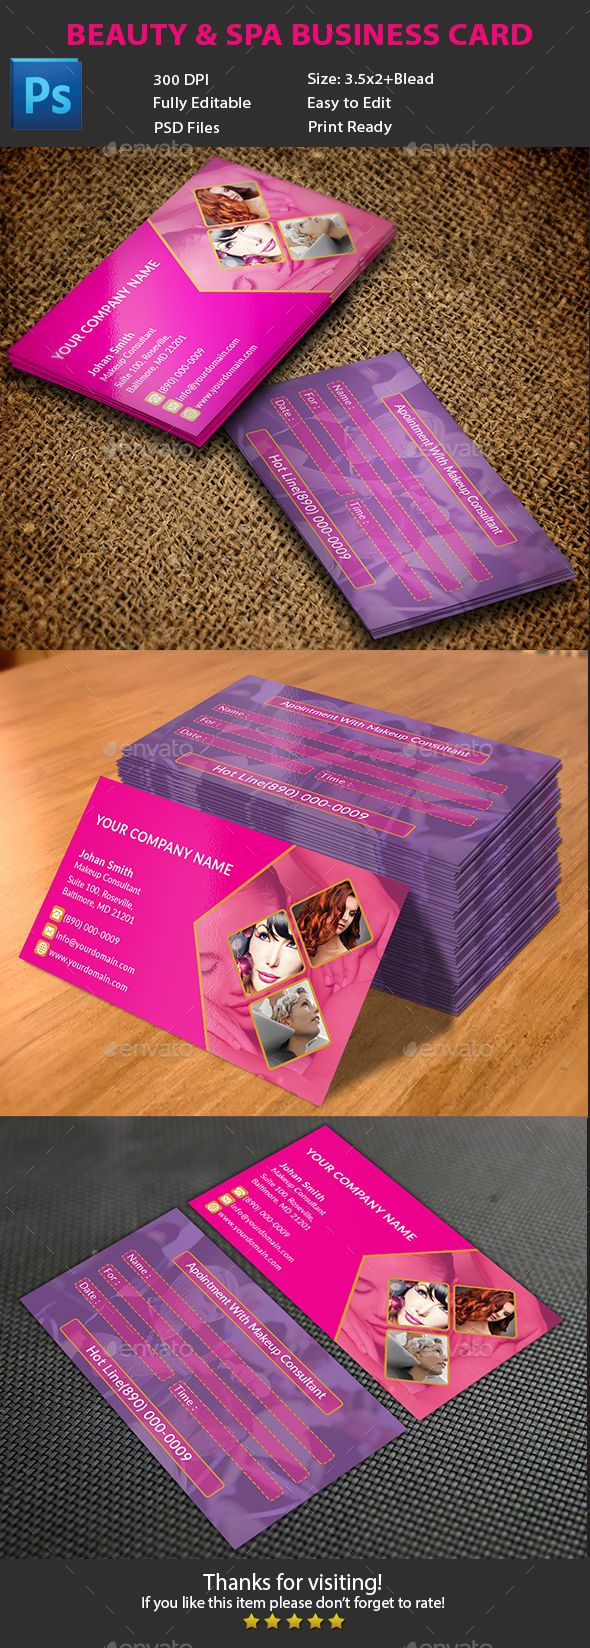 Beauty & Spa Business Card | Business cards, Card templates and Spa